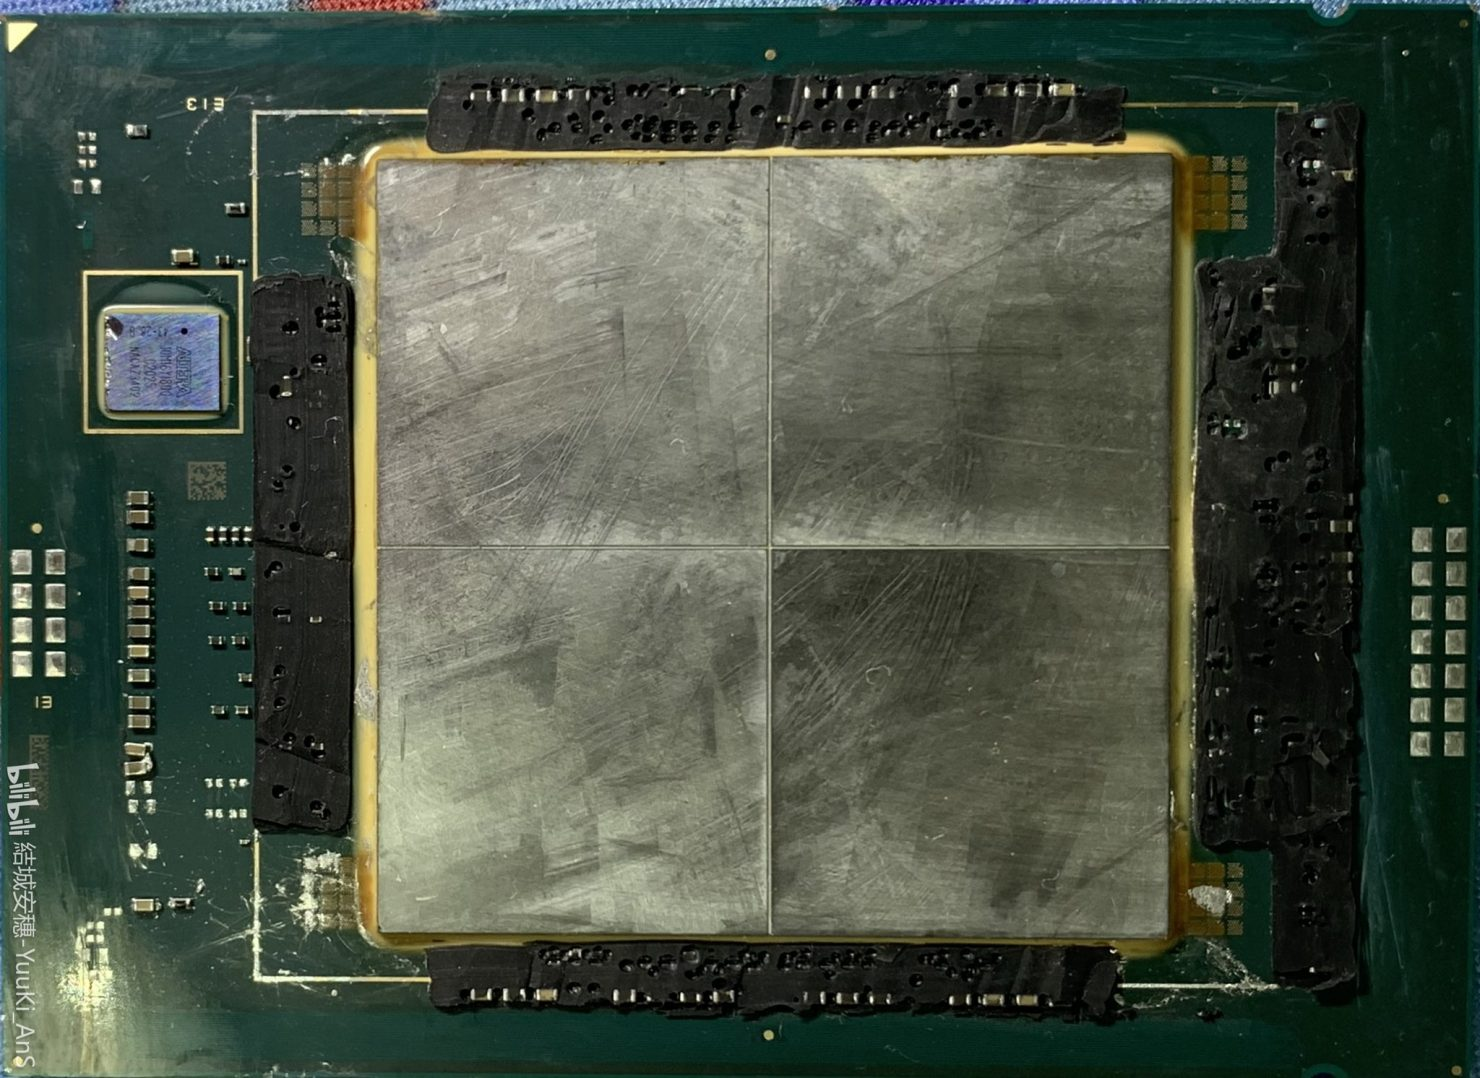 intel's-next-gen-10nm-esf-based-sapphire-rapids-xeon-cpu-die-shots-leak-out,-up-to-56-active-'golden-cove'-cores